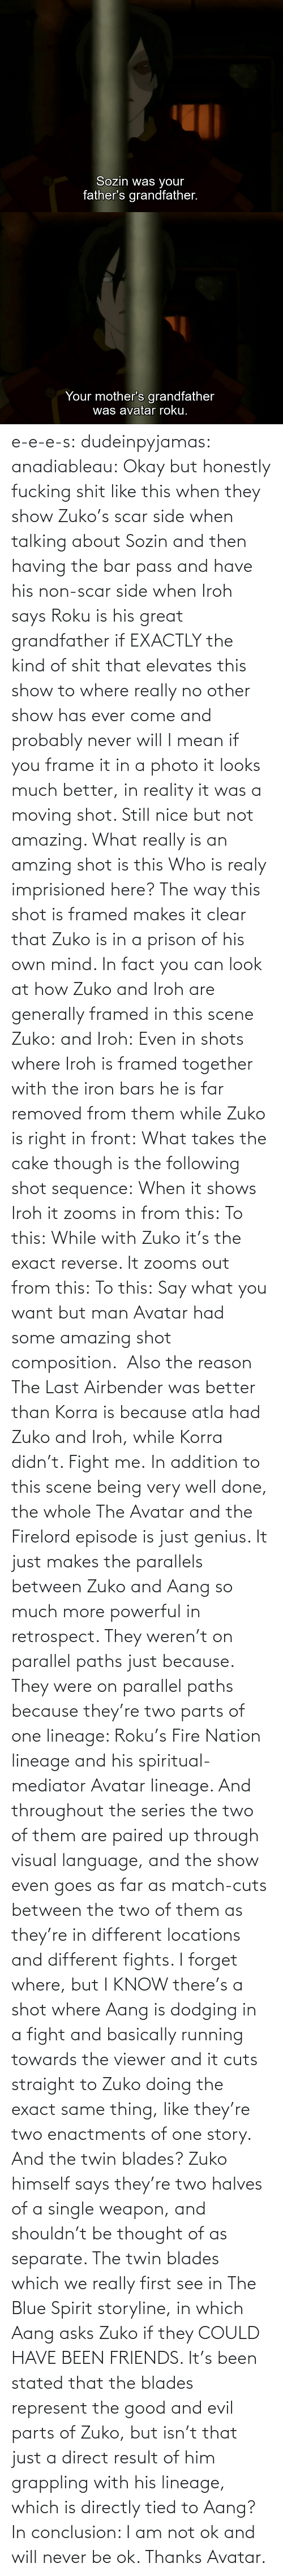 shot: e-e-e-s: dudeinpyjamas:   anadiableau: Okay but honestly fucking shit like this when they show Zuko's scar side when talking about Sozin and then having the bar pass and have his non-scar side when Iroh says Roku is his great grandfather if EXACTLY the kind of shit that elevates this show to where really no other show has ever come and probably never will I mean if you frame it in a photo it looks much better, in reality it was a moving shot. Still nice but not amazing. What really is an amzing shot is this Who is realy imprisioned here? The way this shot is framed makes it clear that Zuko is in a prison of his own mind. In fact you can look at how Zuko and Iroh are generally framed in this scene Zuko: and Iroh: Even in shots where Iroh is framed together with the iron bars he is far removed from them while Zuko is right in front:  What takes the cake though is the following shot sequence: When it shows Iroh it zooms in from this: To this: While with Zuko it's the exact reverse. It zooms out from this: To this: Say what you want but man Avatar had some amazing shot composition.   Also the reason The Last Airbender was better than Korra is because atla had Zuko and Iroh, while Korra didn't. Fight me.    In addition to this scene being very well done, the whole The Avatar and the Firelord episode is just genius.  It just makes the parallels between Zuko and Aang so much more powerful in retrospect.  They weren't on parallel paths just because.  They were on parallel paths because they're two parts of one lineage: Roku's Fire Nation lineage and his spiritual-mediator Avatar lineage.  And throughout the series the two of them are paired up through visual language, and the show even goes as far as match-cuts between the two of them as they're in different locations and different fights.  I forget where, but I KNOW there's a shot where Aang is dodging in a fight and basically running towards the viewer and it cuts straight to Zuko doing the exact same thing, like they're two enactments of one story.   And the twin blades?  Zuko himself says they're two halves of a single weapon, and shouldn't be thought of as separate.  The twin blades which we really first see in The Blue Spirit storyline, in which Aang asks Zuko if they COULD HAVE BEEN FRIENDS.  It's been stated that the blades represent the good and evil parts of Zuko, but isn't that just a direct result of him grappling with his lineage, which is directly tied to Aang? In conclusion: I am not ok and will never be ok.  Thanks Avatar.